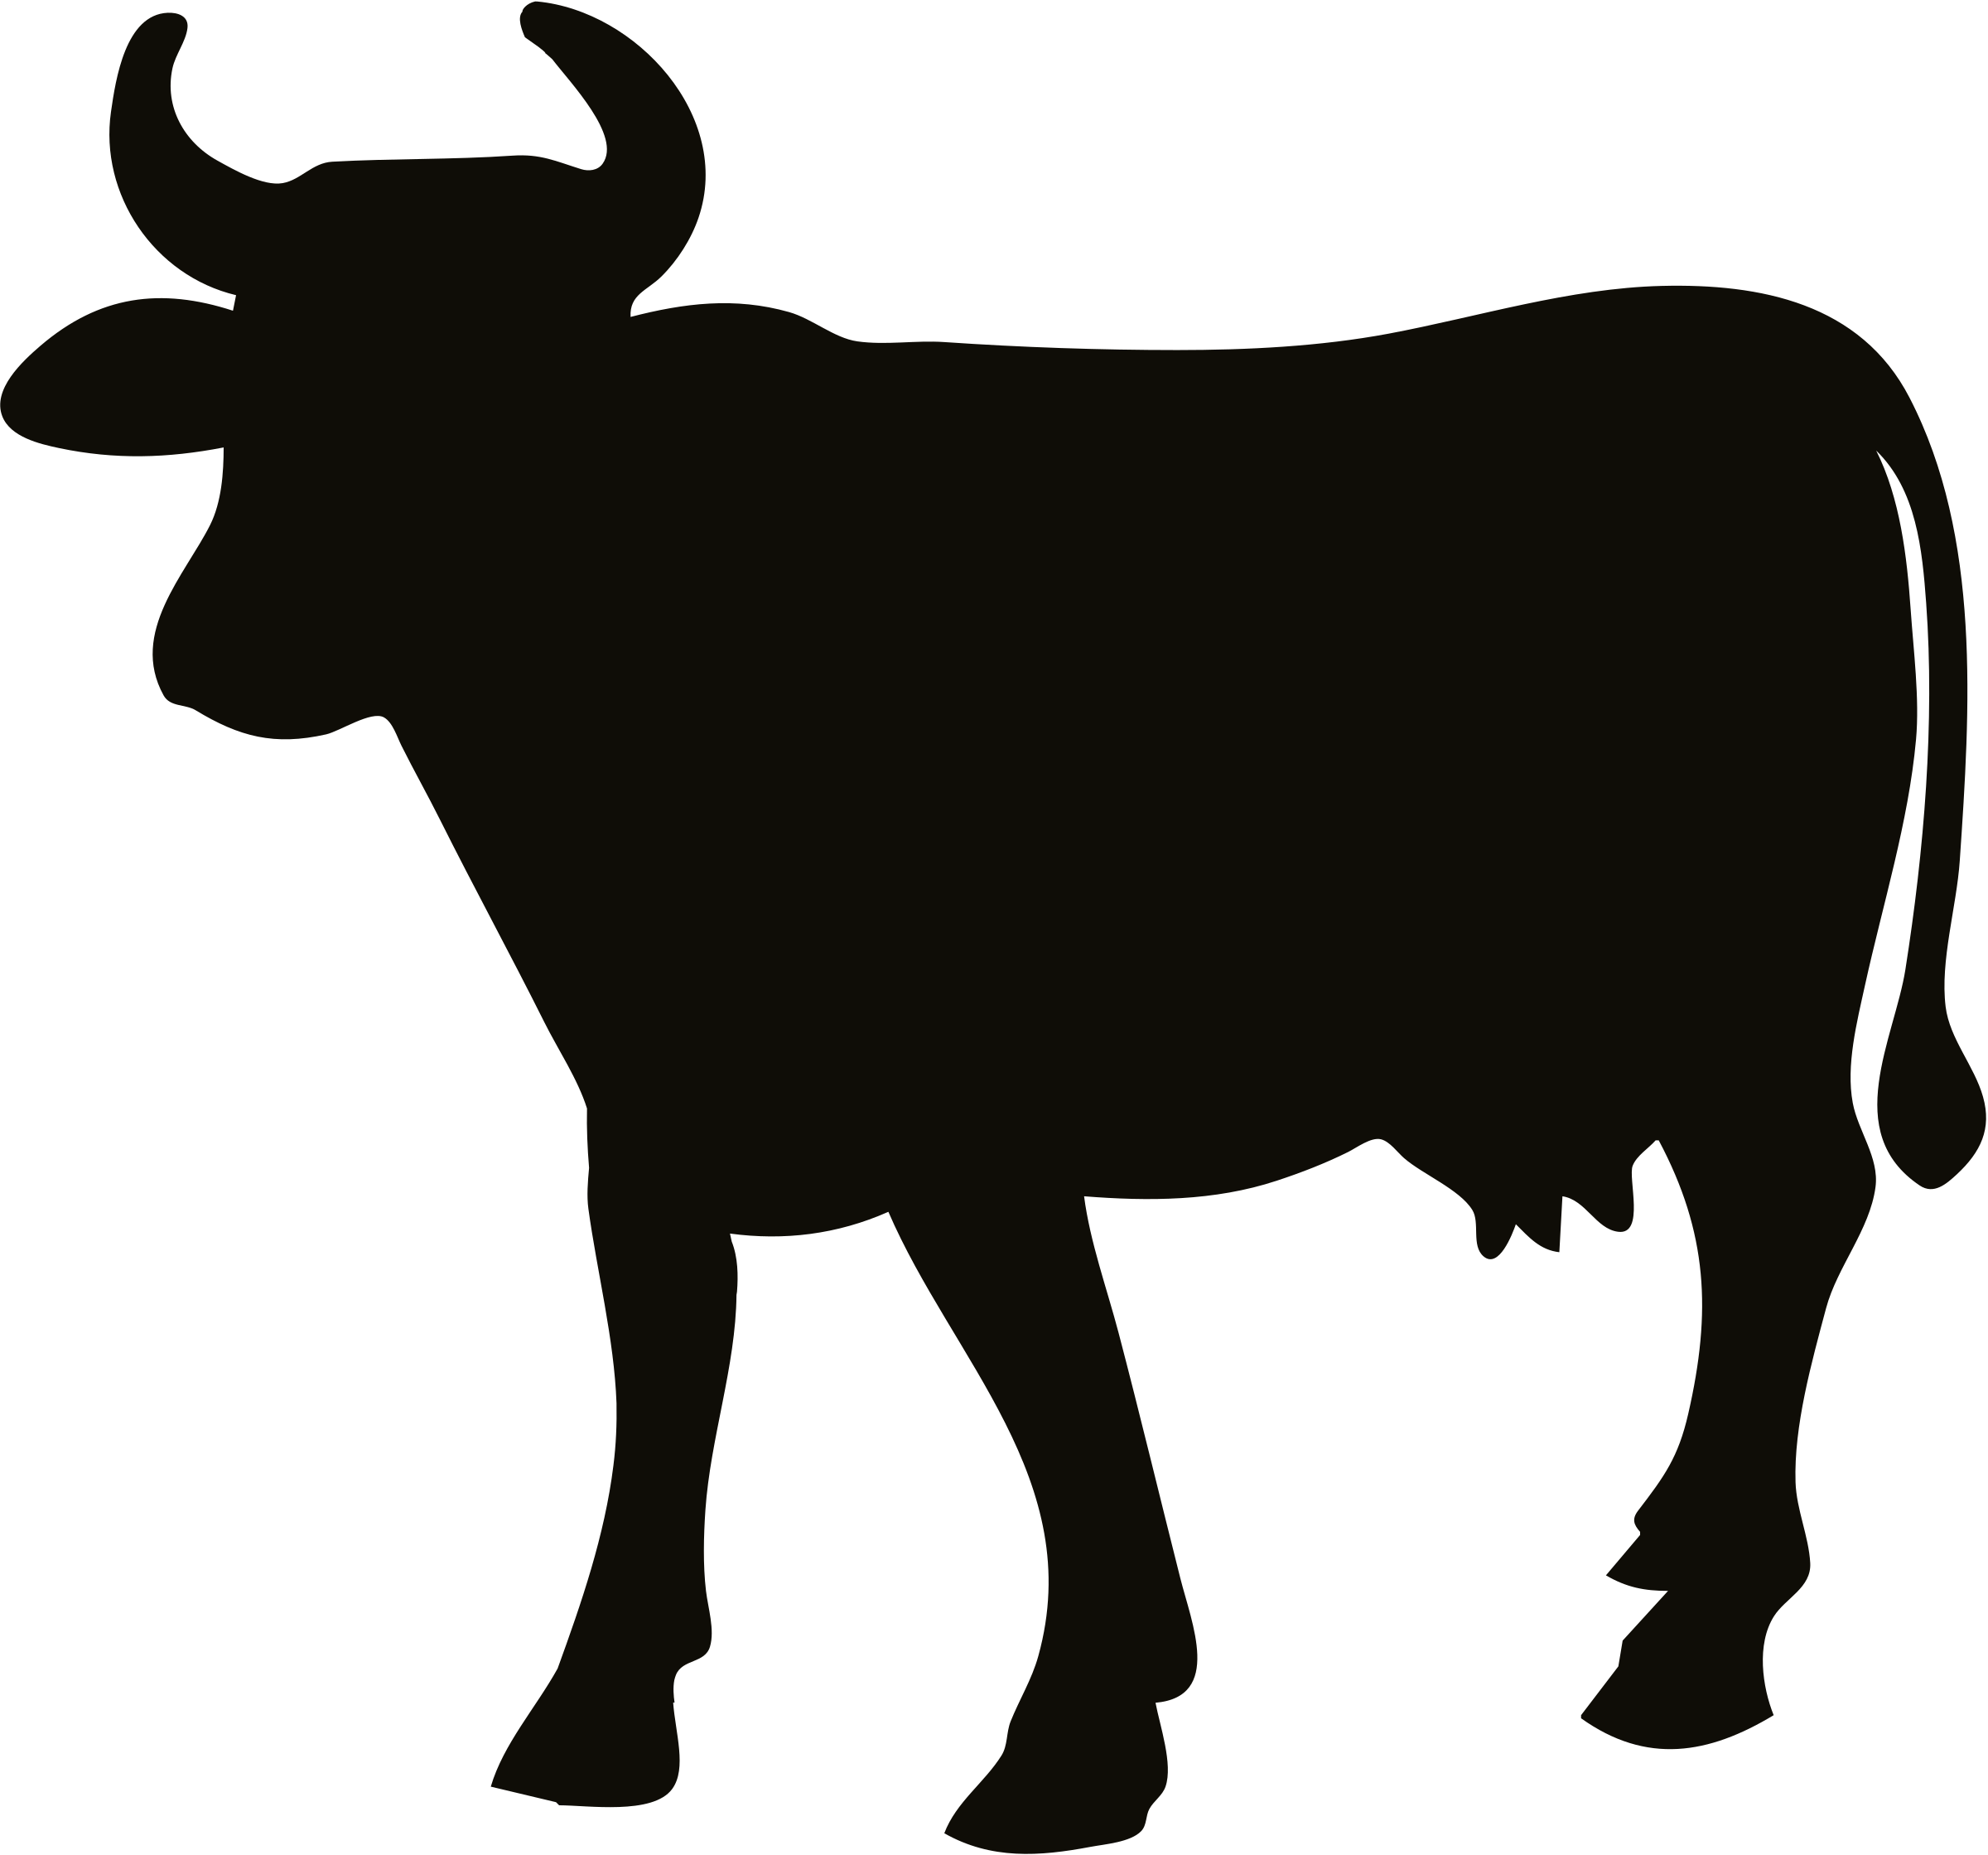 Beef silhouette at getdrawings. Clipart cow transparent background